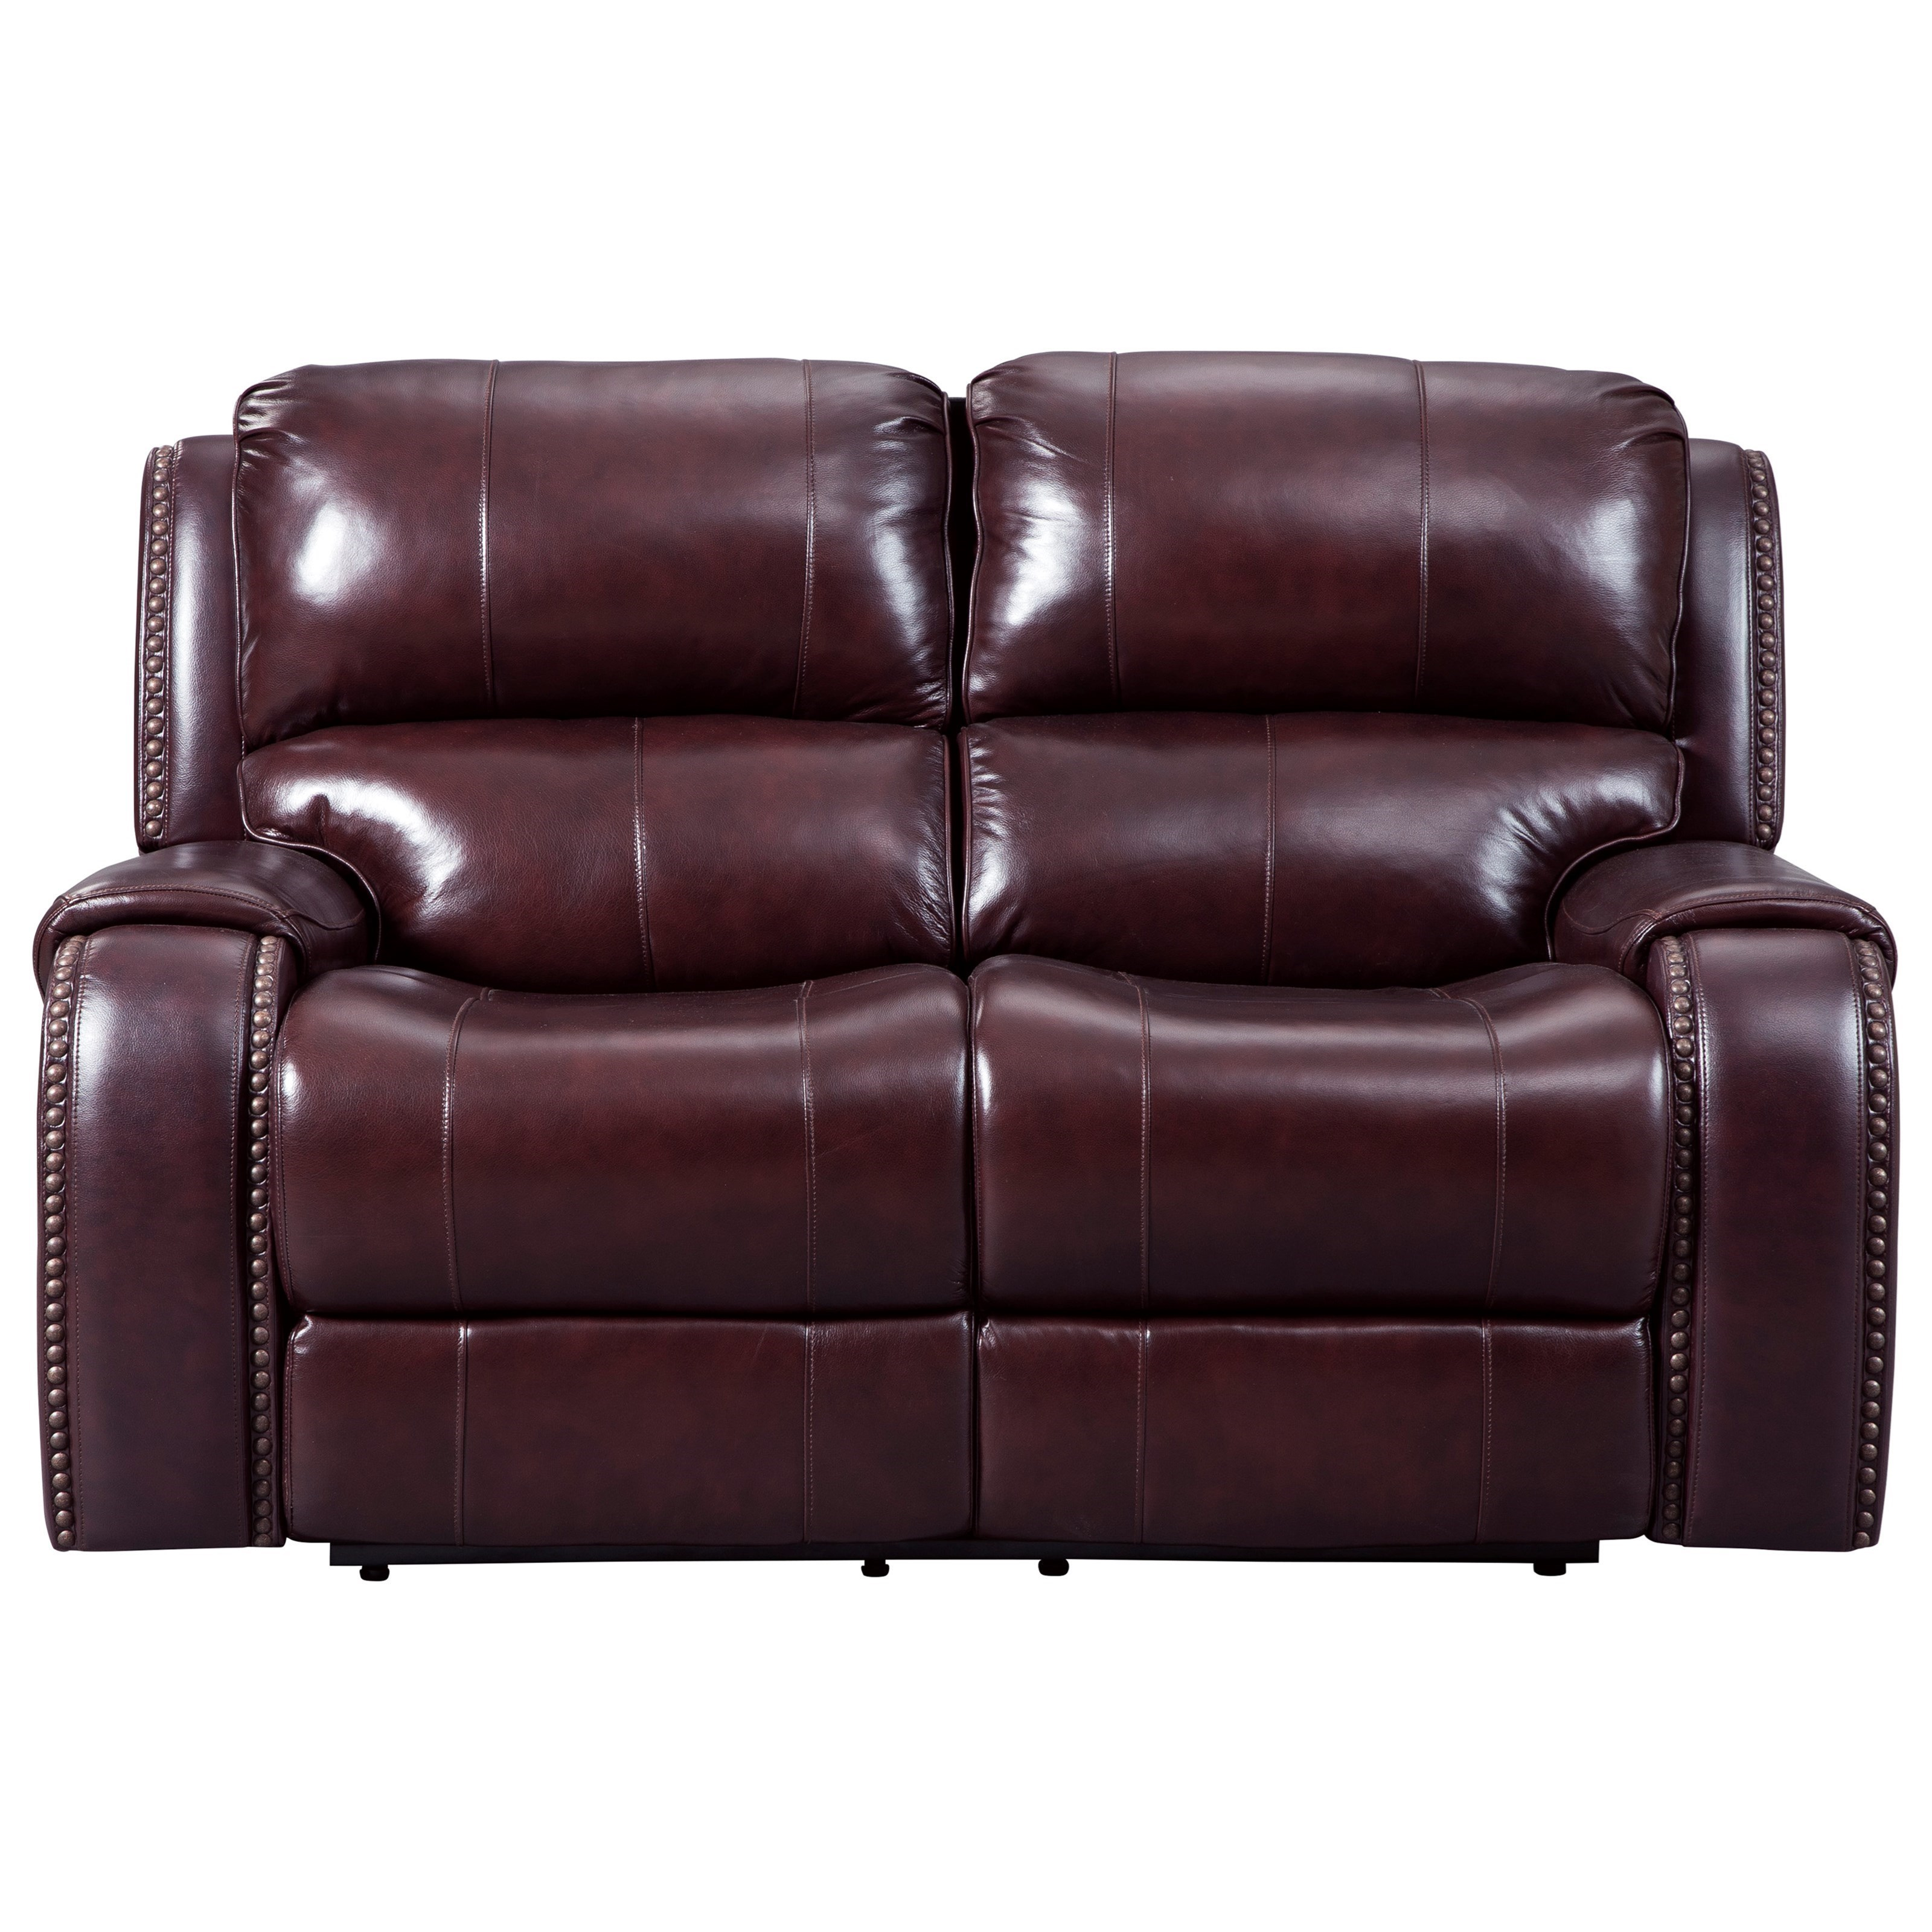 Signature Design by Ashley Gilmanton Power Reclining Loveseat w/ Adjustable Headrest  sc 1 st  Wayside Furniture : power reclining loveseats - islam-shia.org